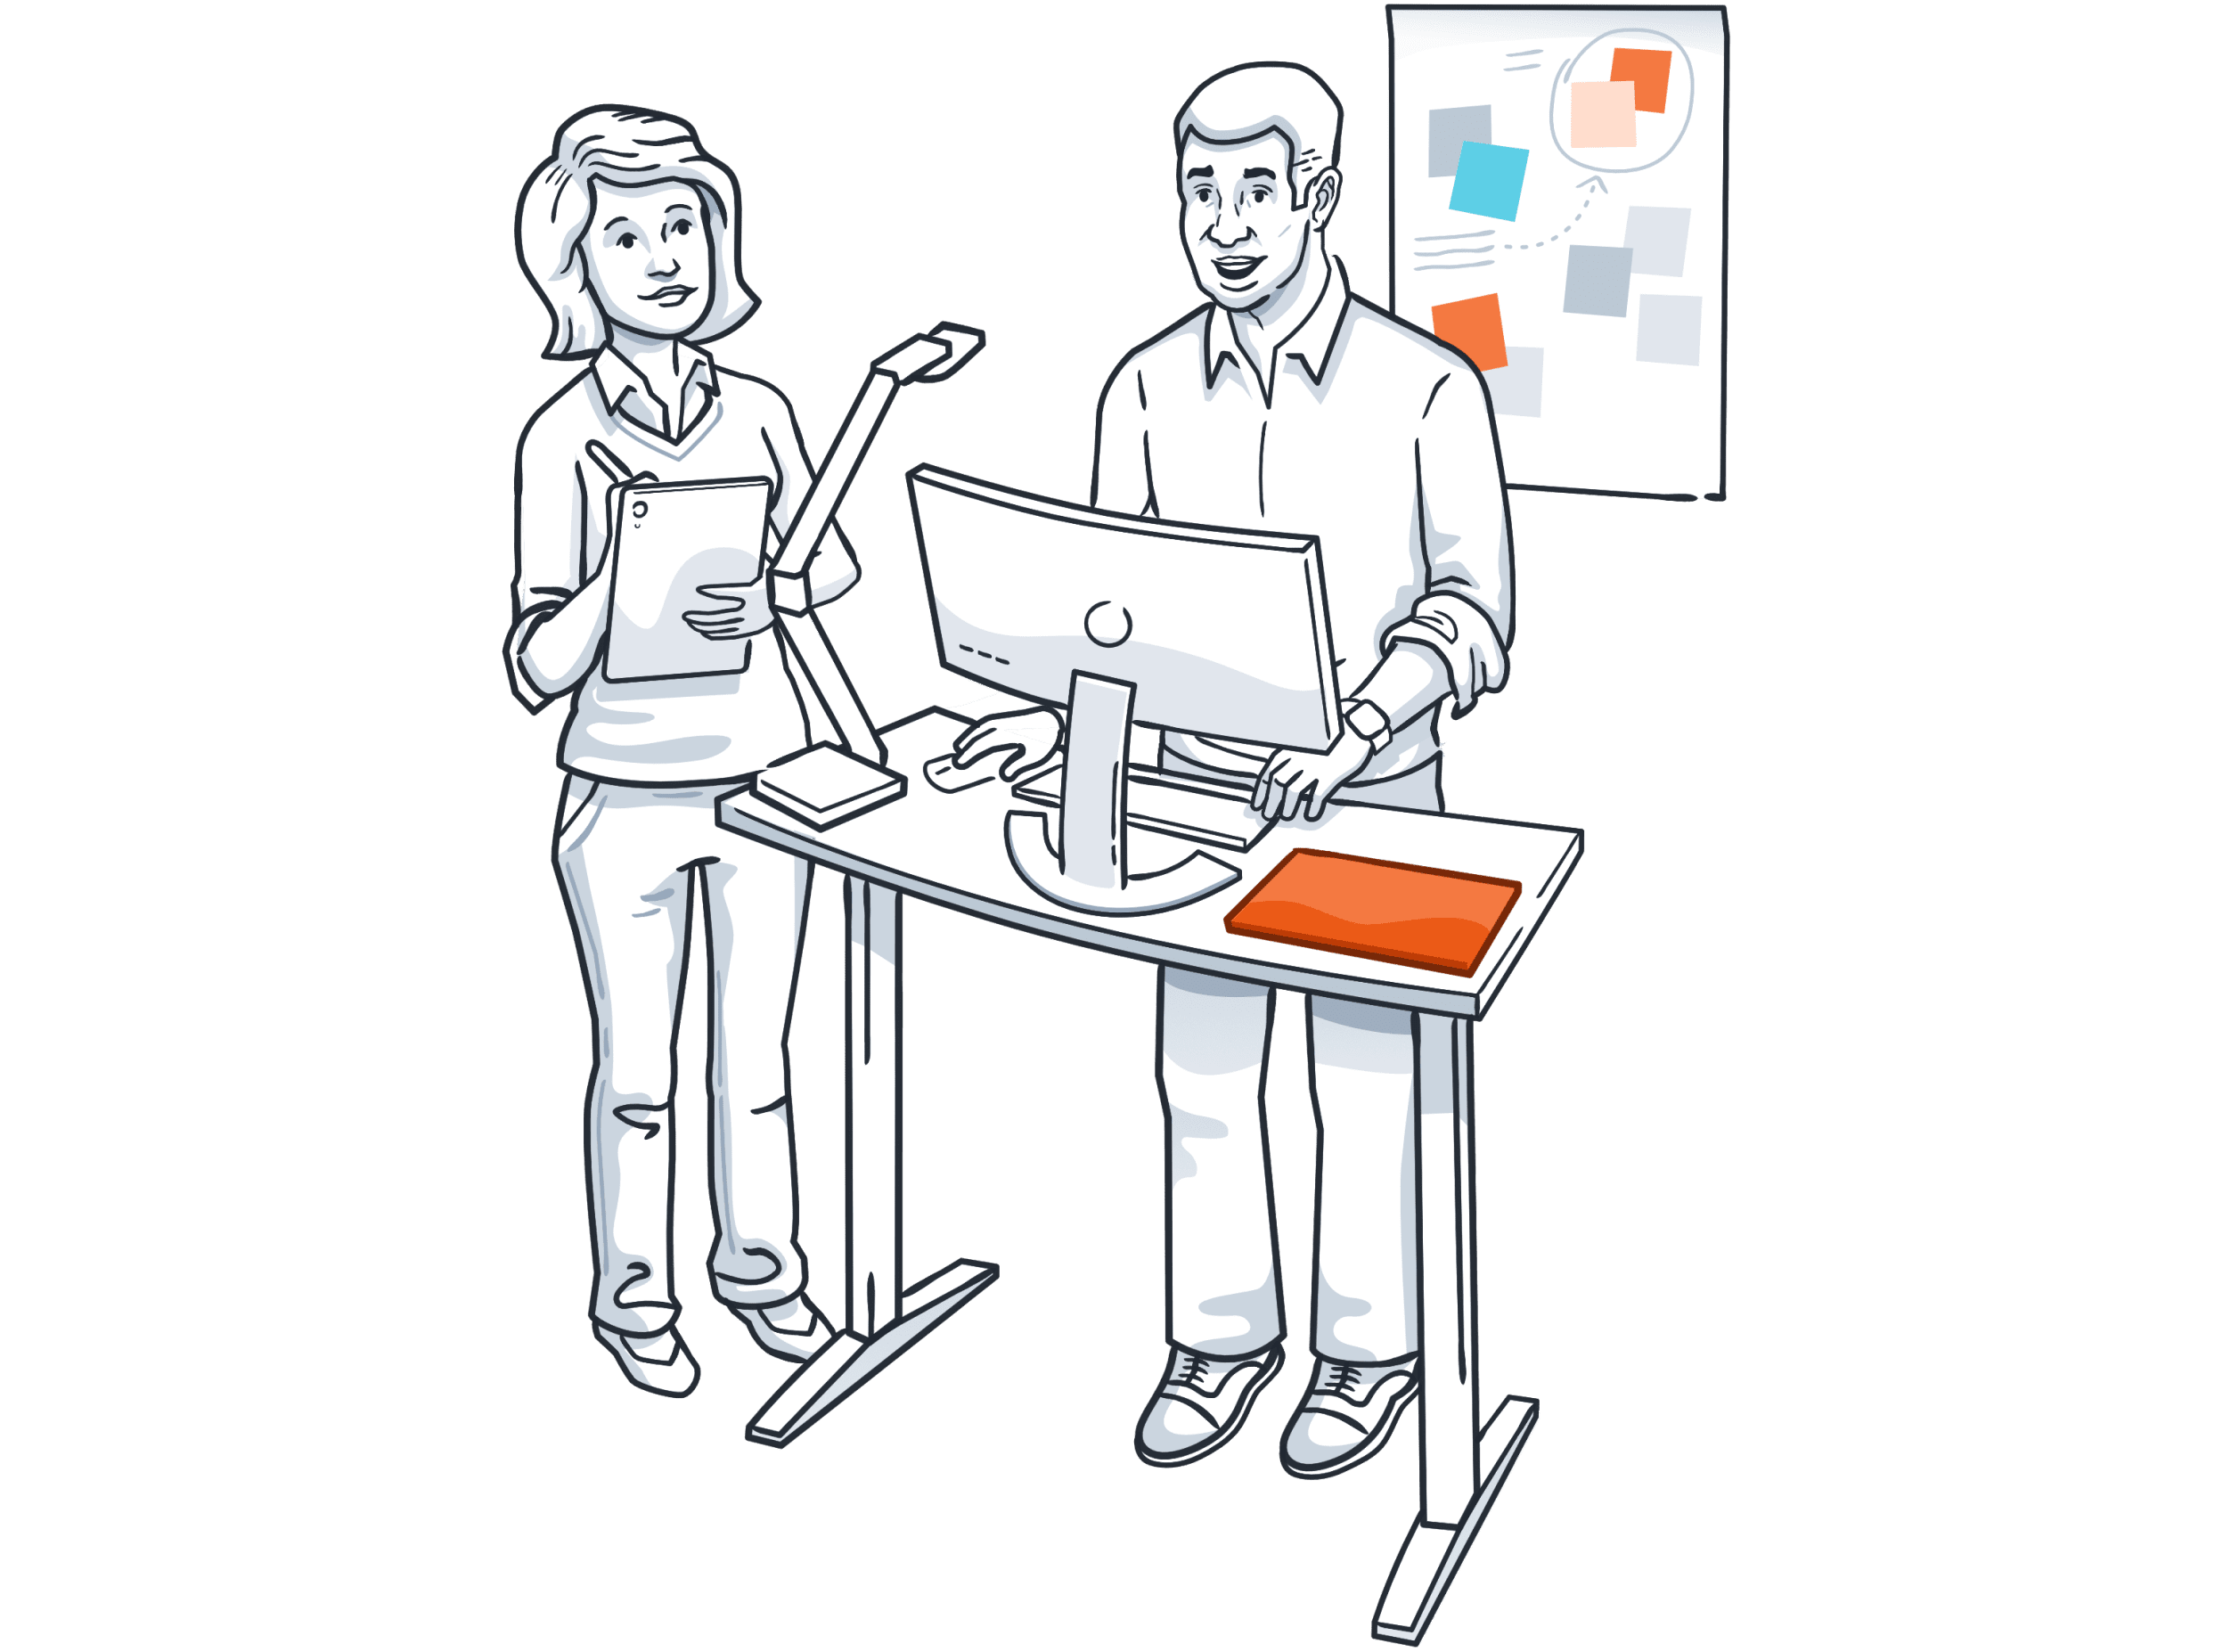 software user testing illustration